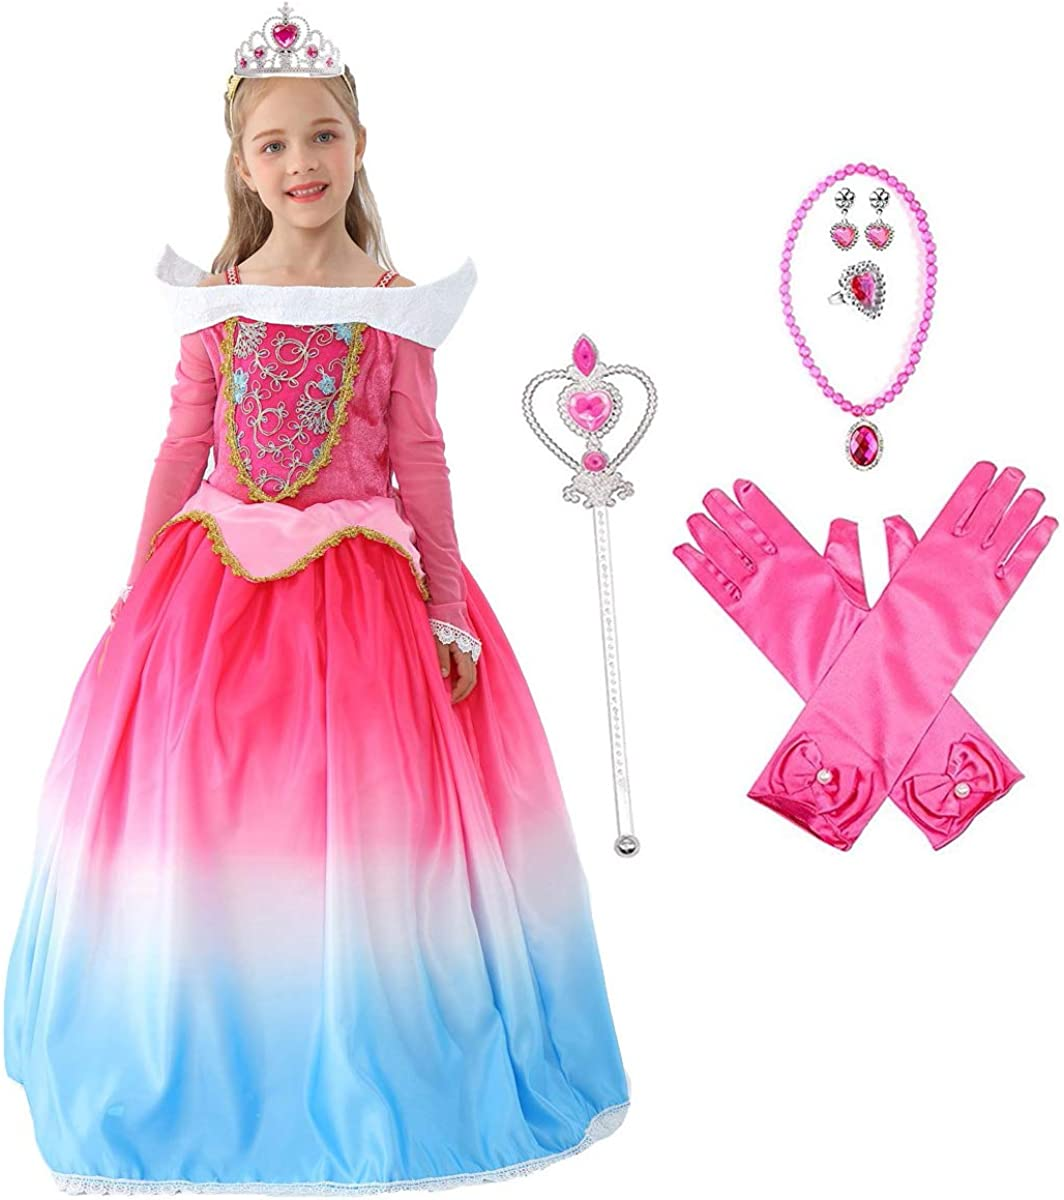 DRESS UP BRIDE DRESS GOWN TIARA BRIDAL PRINCESS ROLE PLAY GIRLS DRESSING GIFT